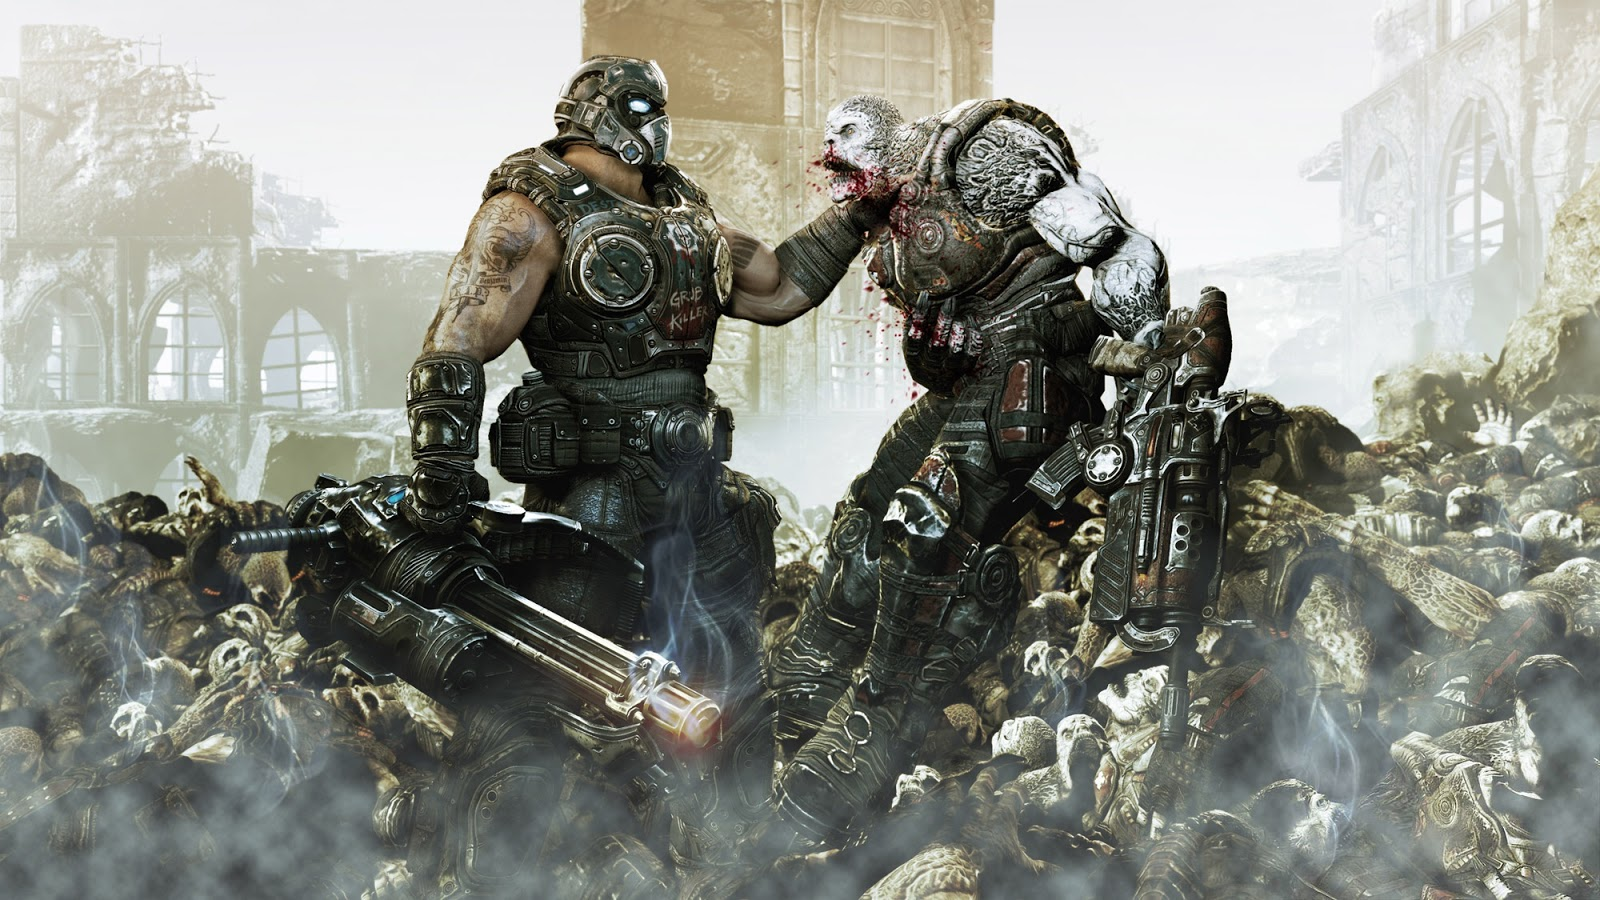 Gears of war xxx larue xxx